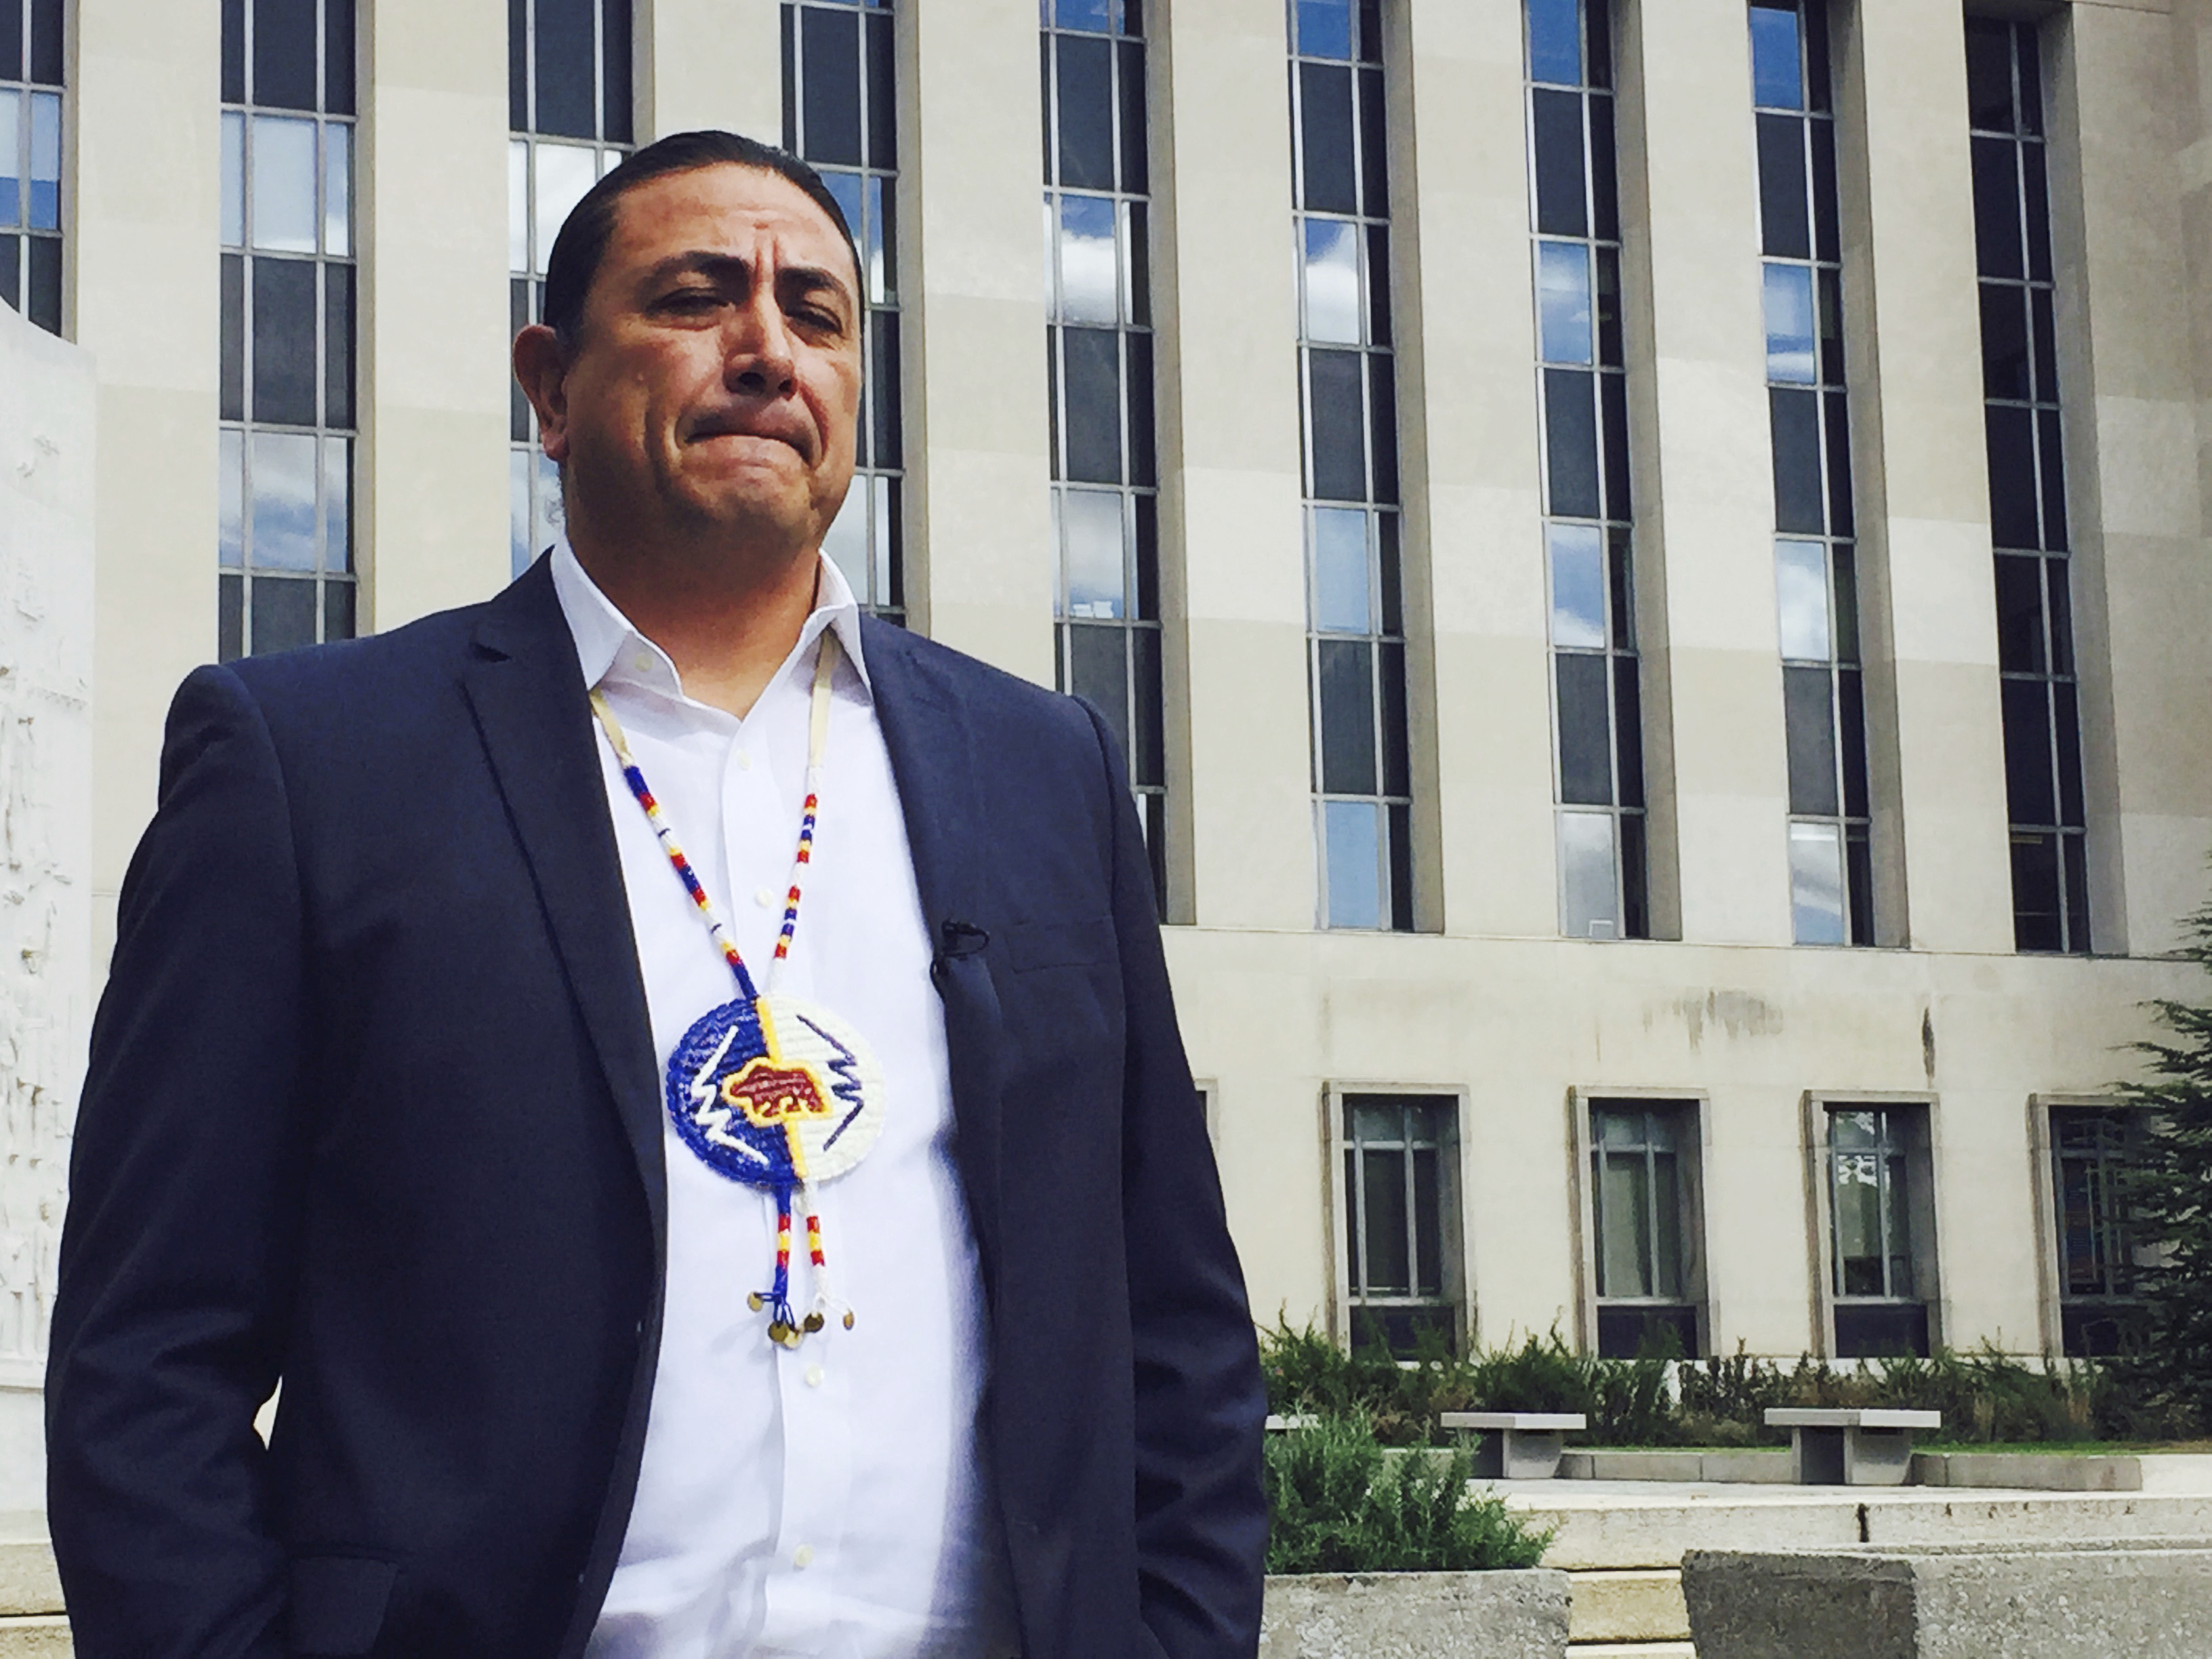 Controversial Dakota Access Pipeline Case Back in Court